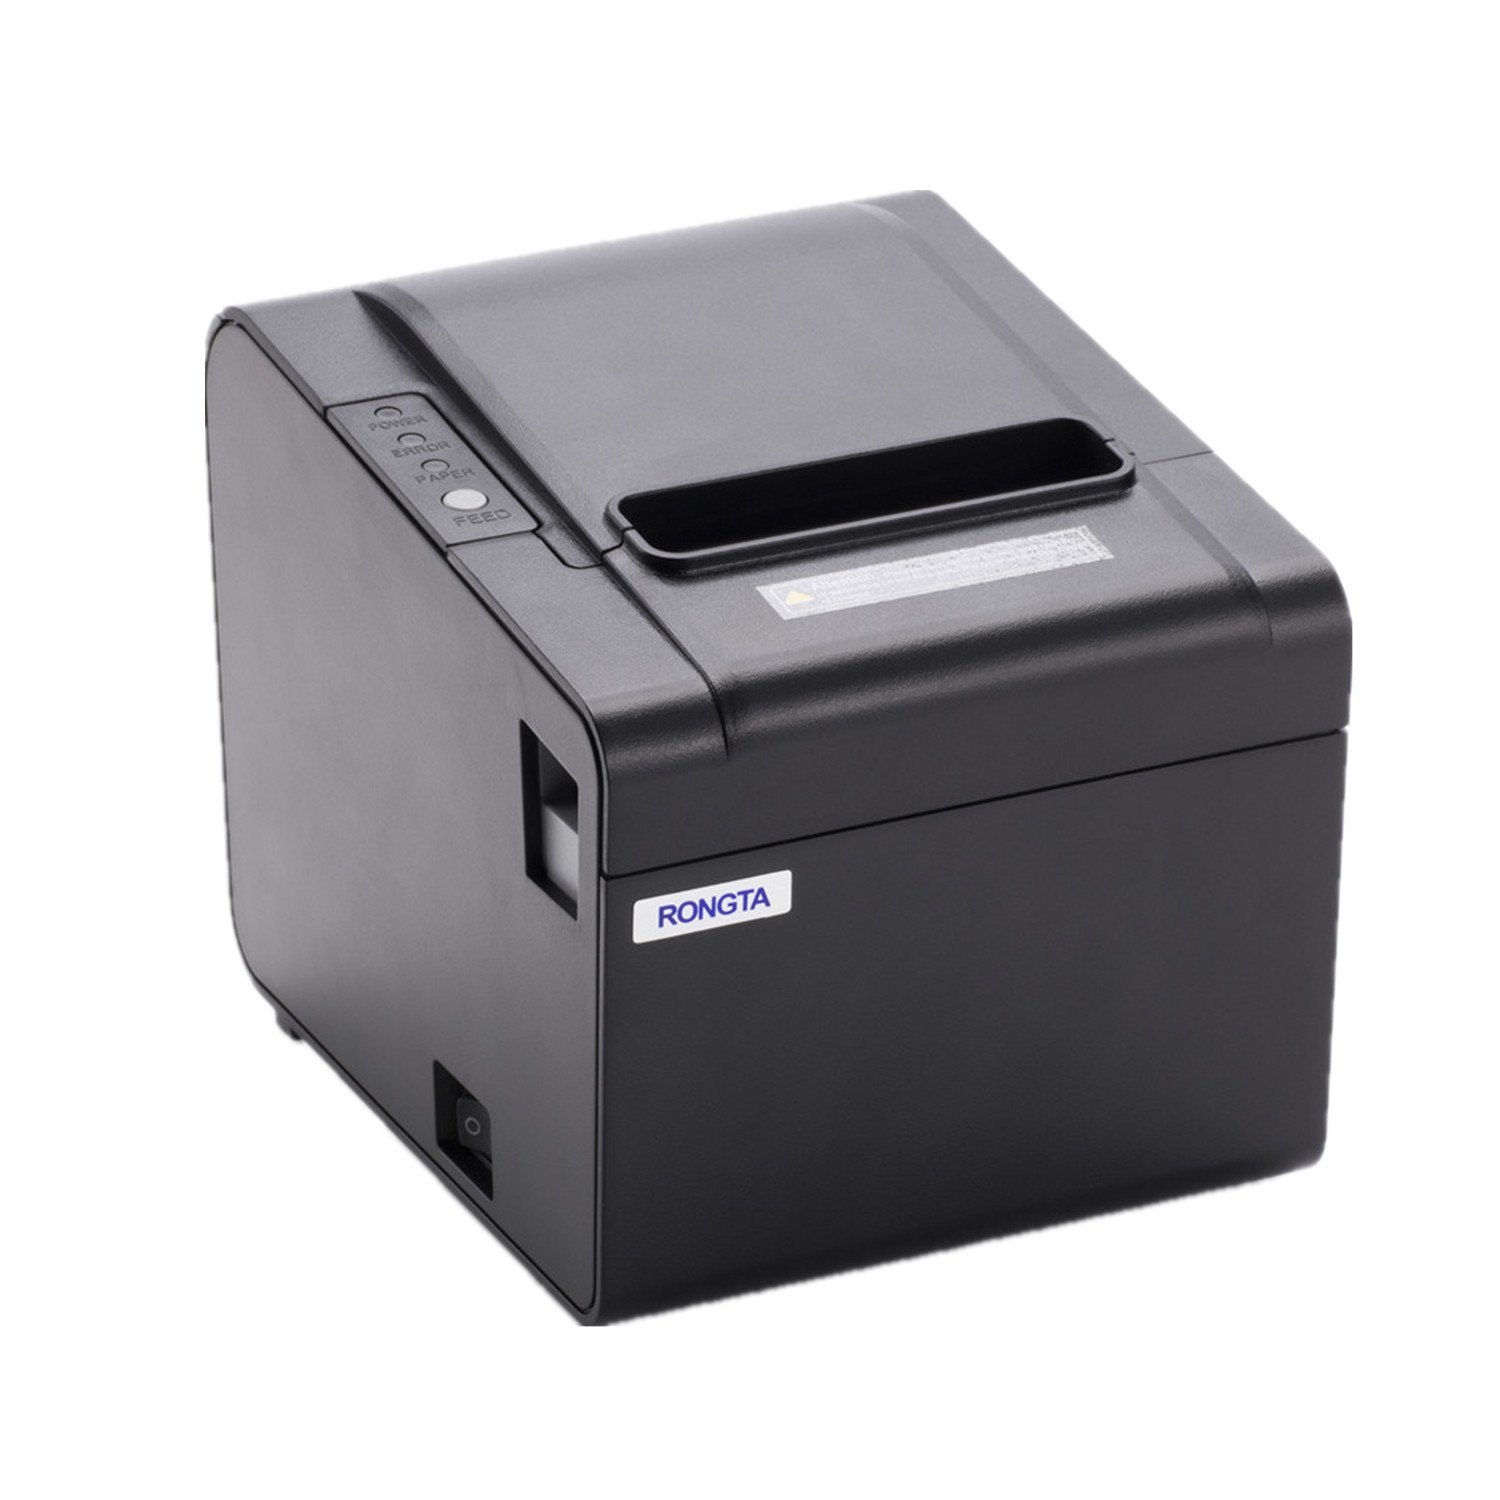 Rongta RP326USE Thermal Printer - USB Serial Ethernet Port POS Thermal Receipt Printer Compatible 80mm Thermal Paper Rolls - 250mm/sec High-speed Printing with ESC / POS Print Commands.(Black)